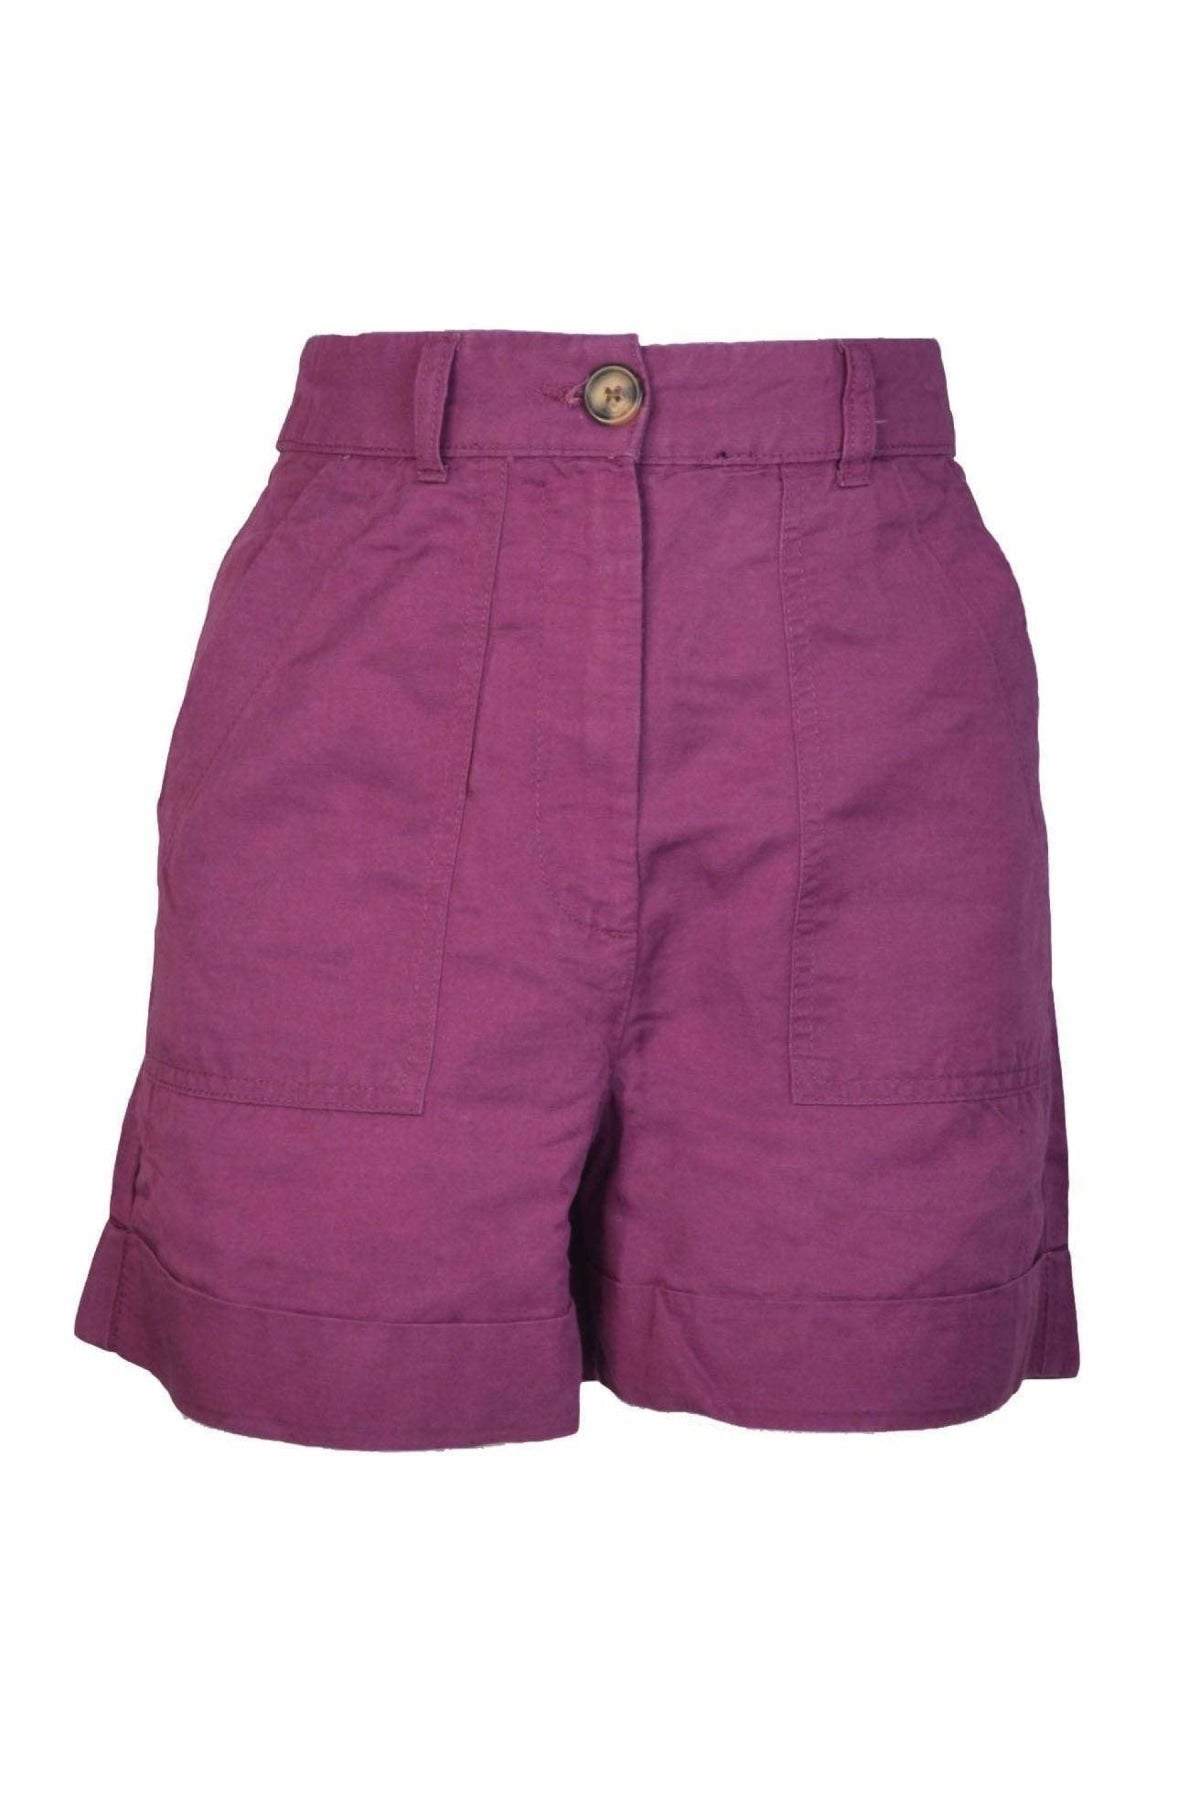 Marks & Spencer Ex M&S Womens Linen Blend Summer Shorts | Secret Label